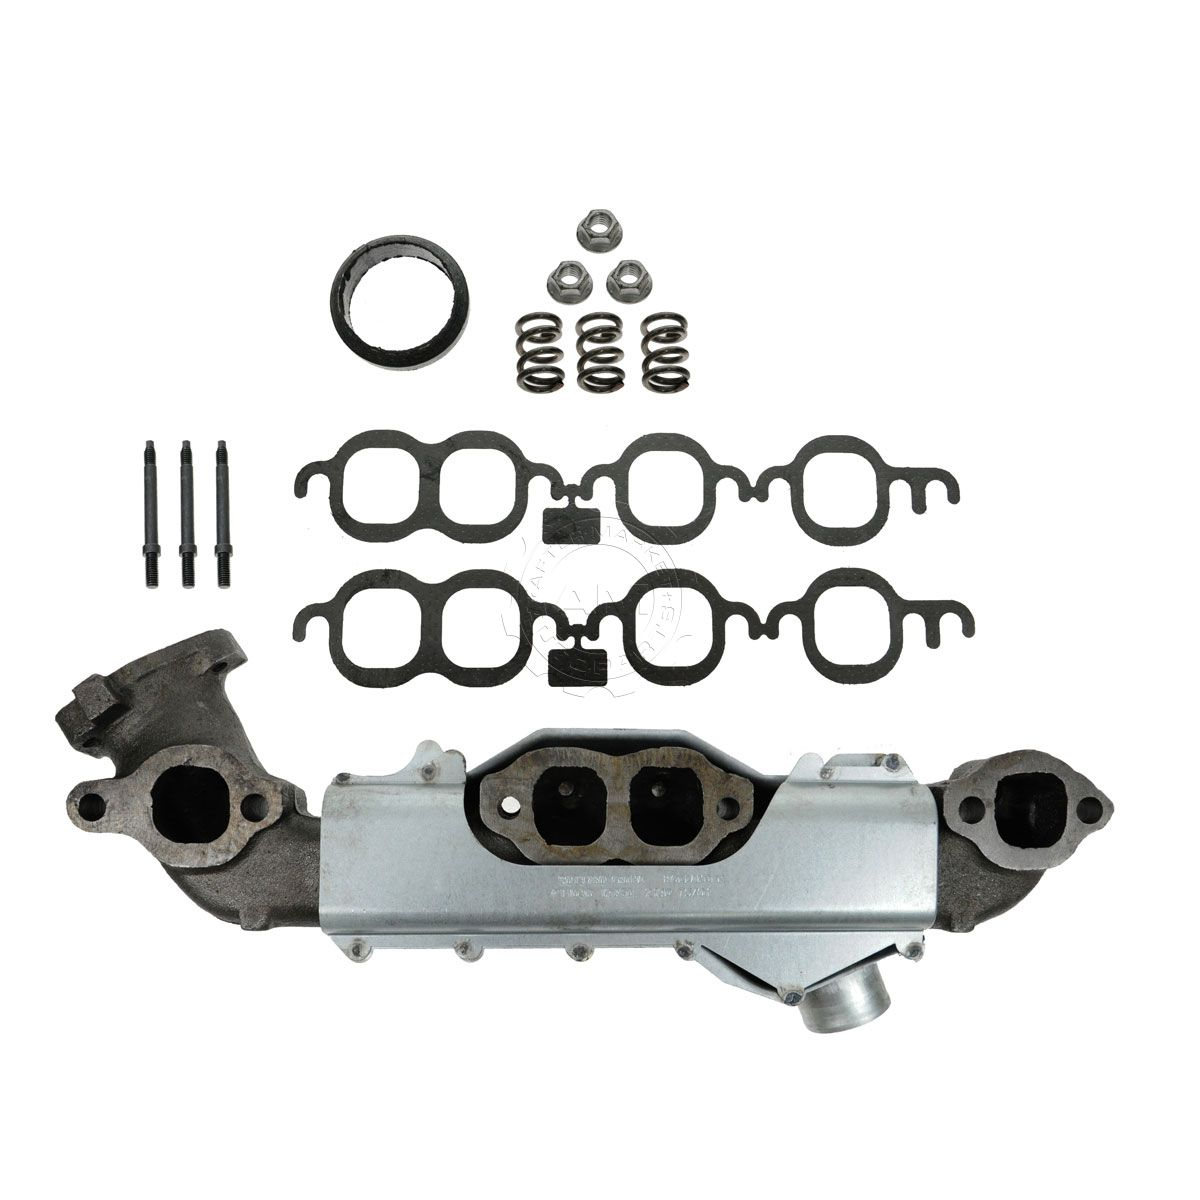 DORMAN 674-245 Exhaust Manifold 5.0 305 5.7 350 Right For